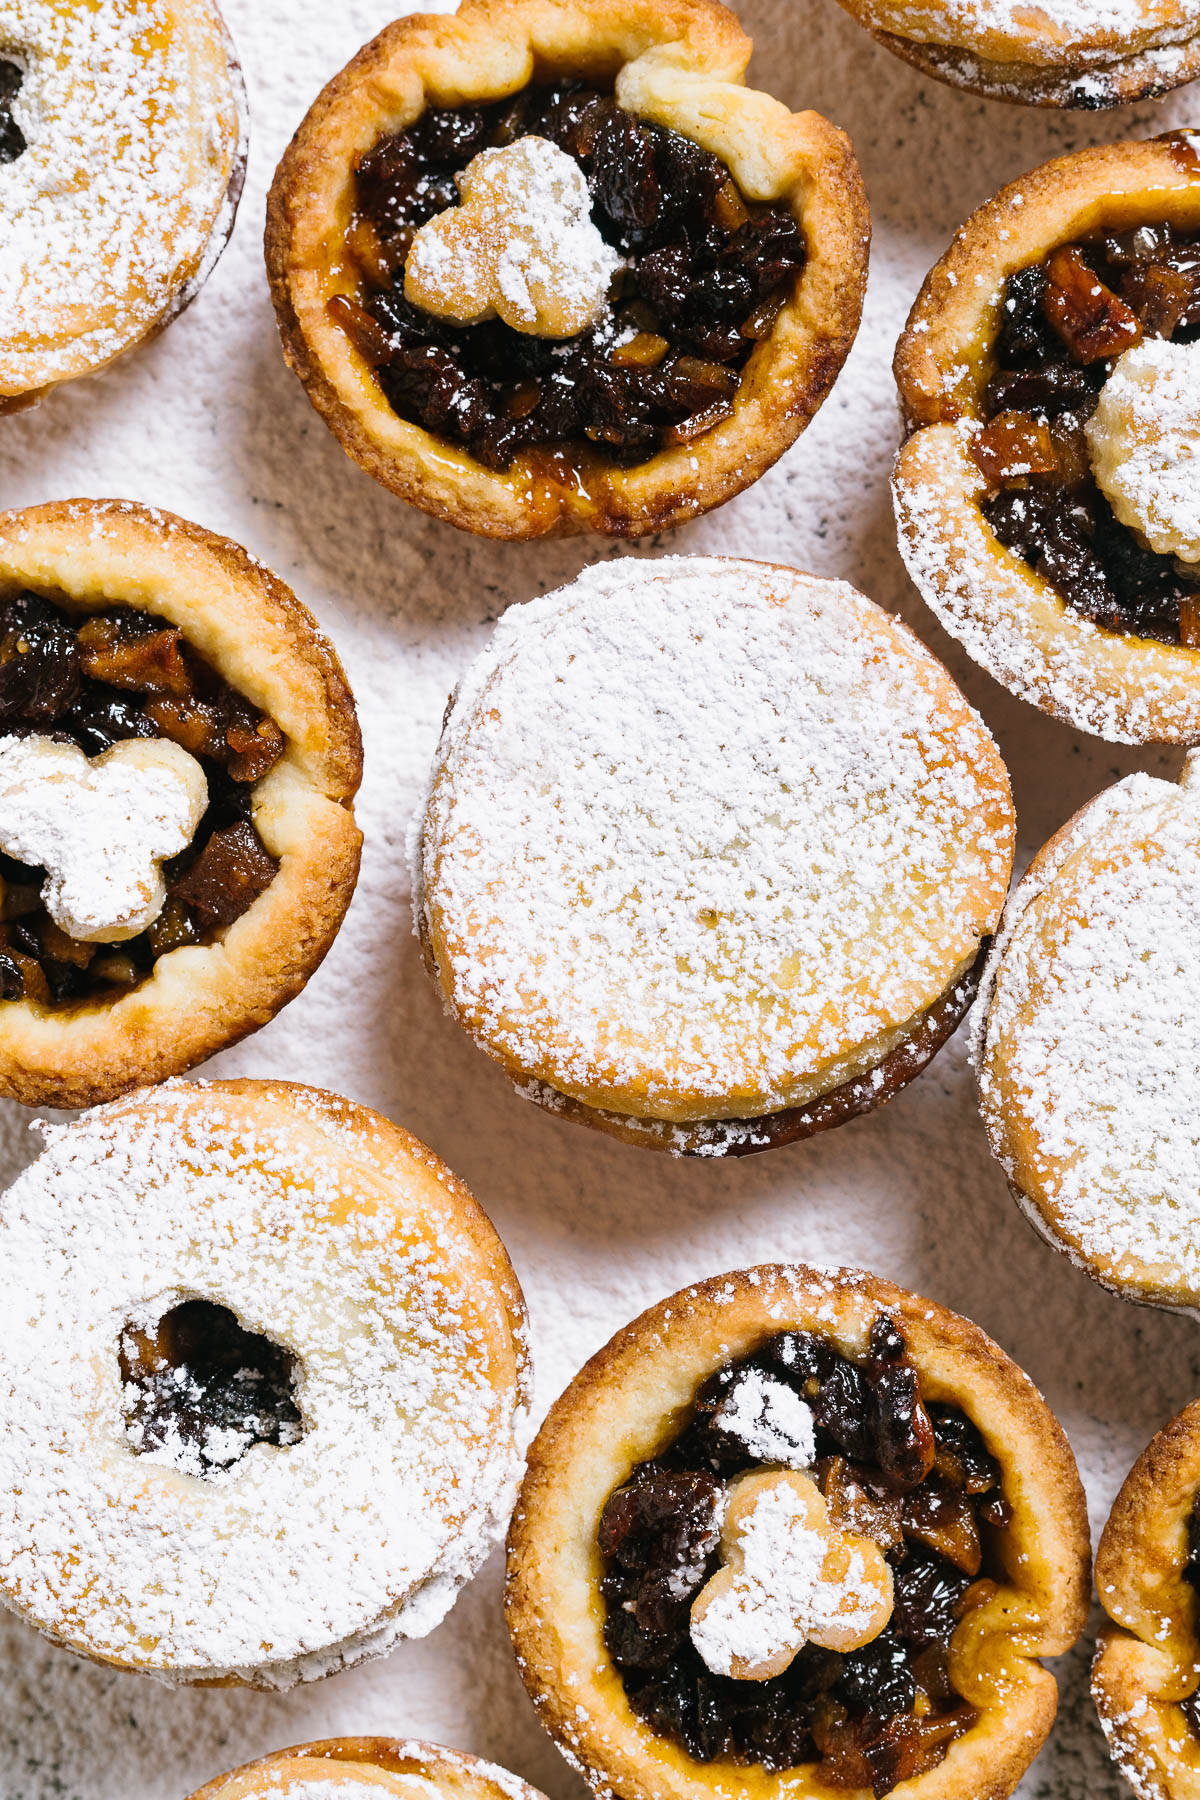 Several tarts, some fully covered with pastry and some decorated.